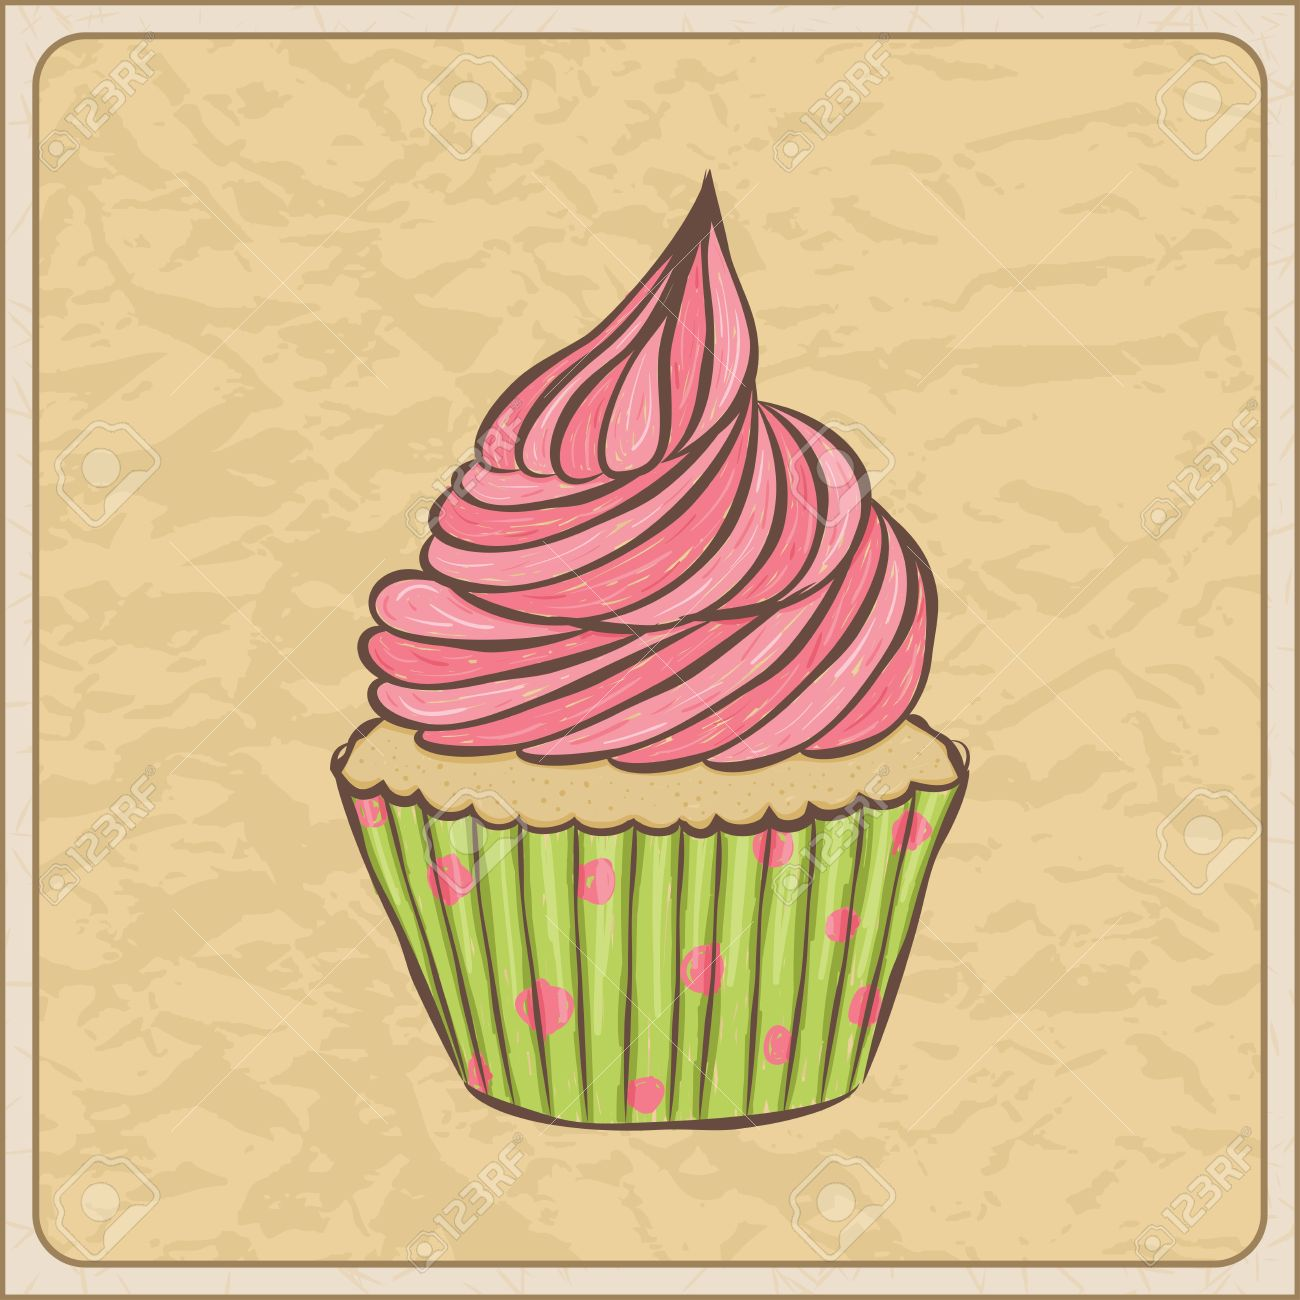 Hand drawn sketchy cupcake on a wrinkled paper. Stock Vector - 20068470